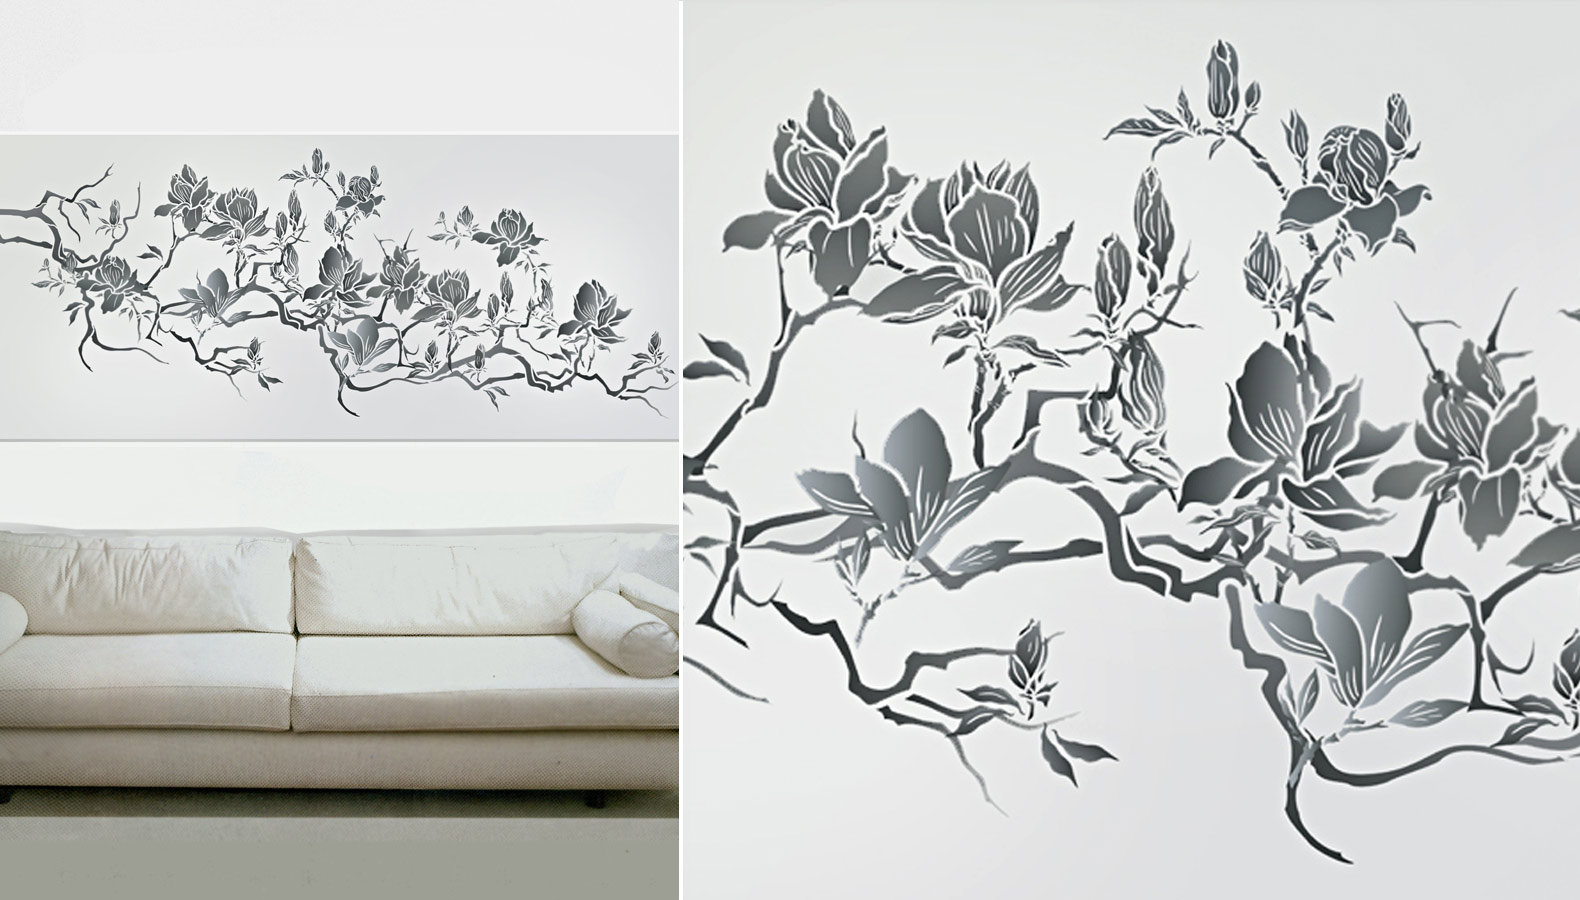 Flowering magnolia tree stencil design inspirations henny the new flowering magnolia tree stencil is great in formal traditional settings simple country rooms or in pared back contemporary interiors amipublicfo Images